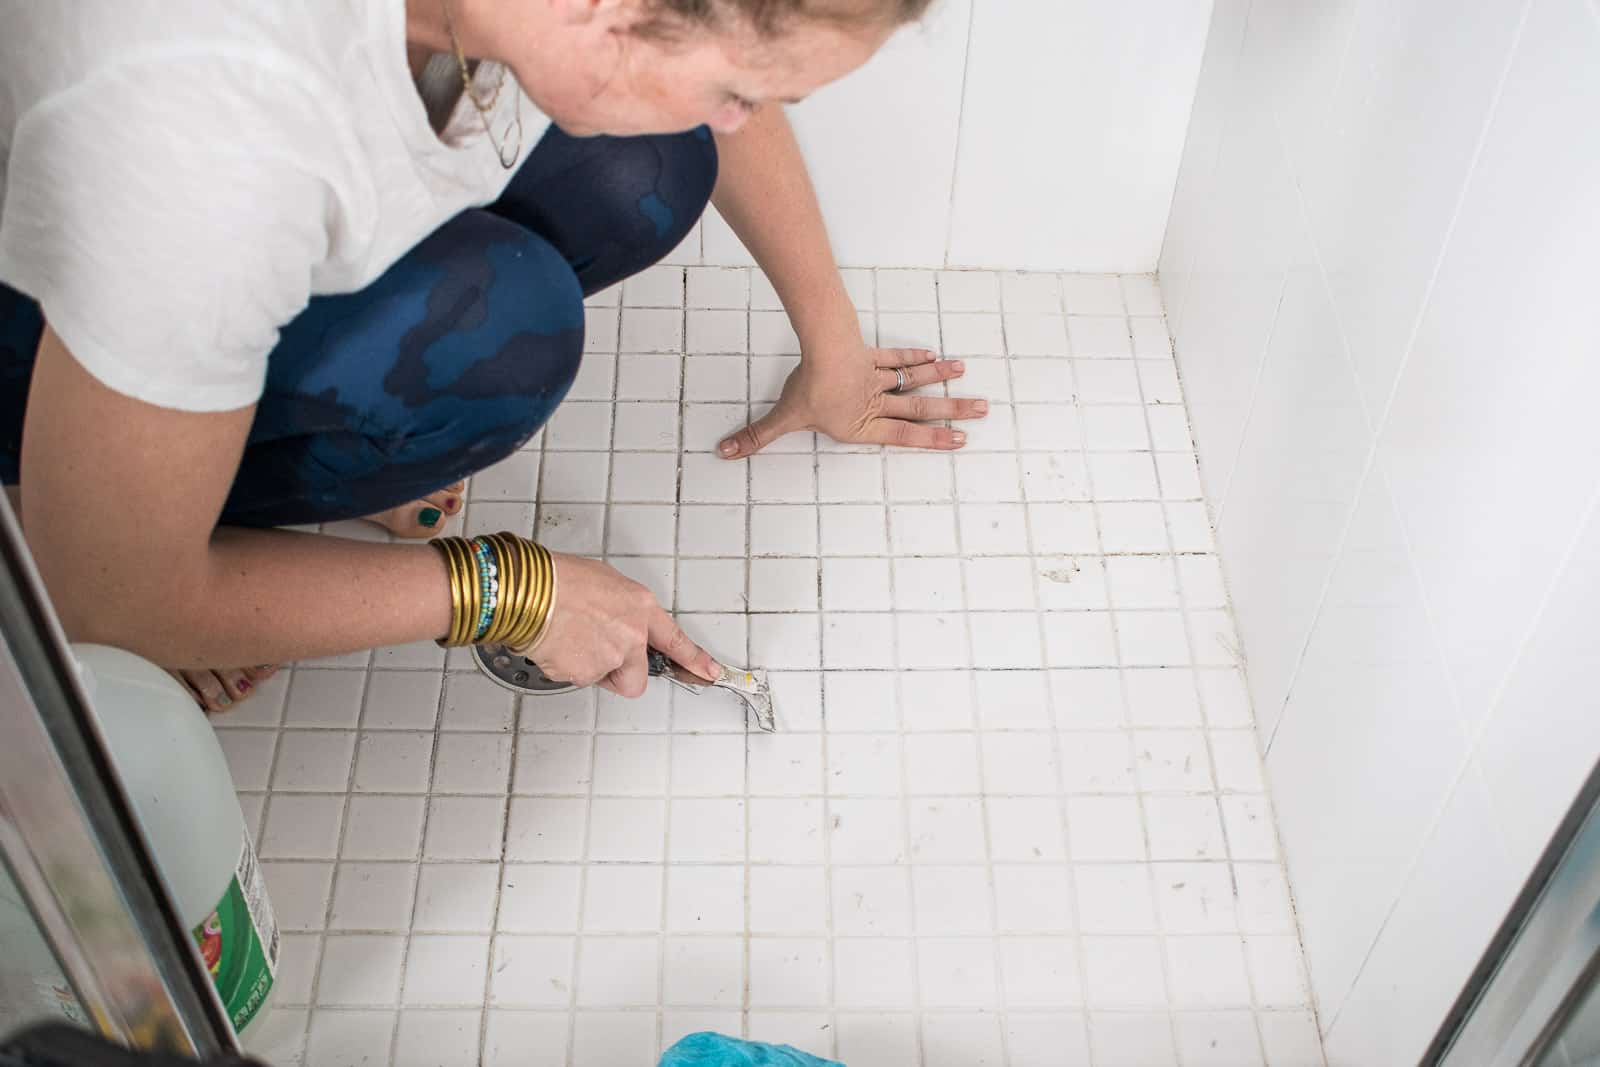 scraping away grout